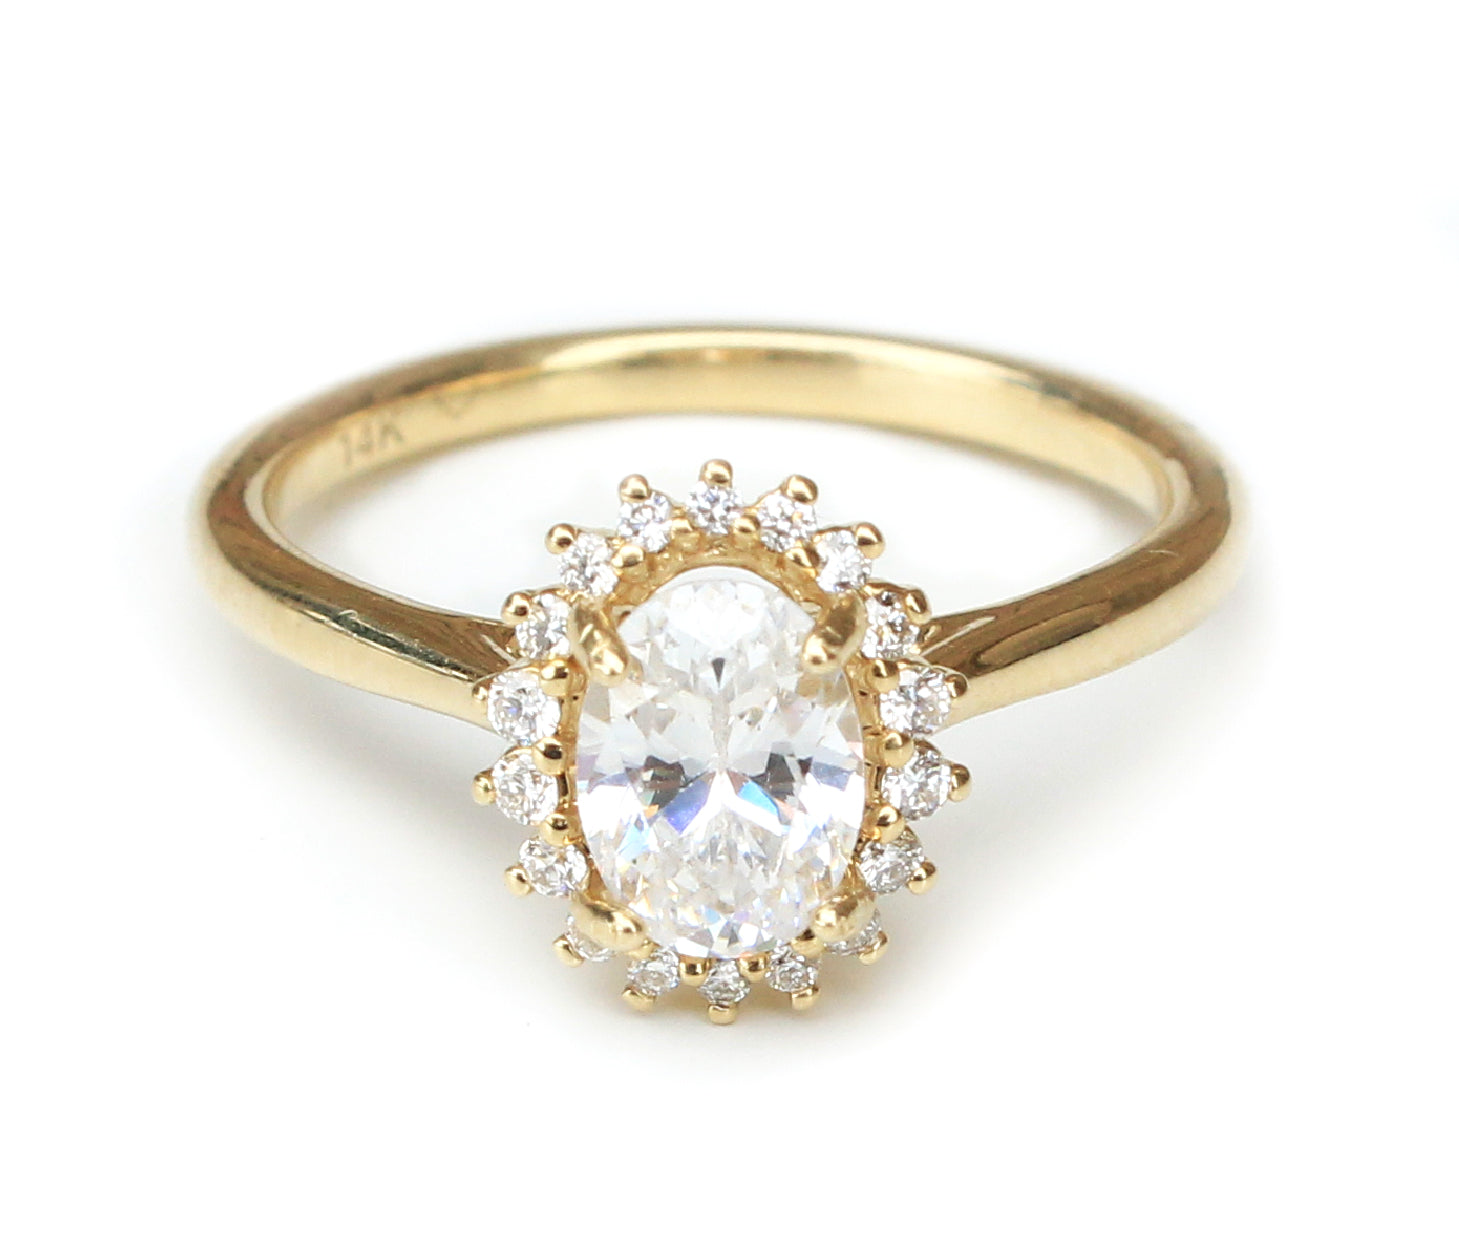 14K Yellow Gold Oval Halo Vintage Inspired Engagement Ring